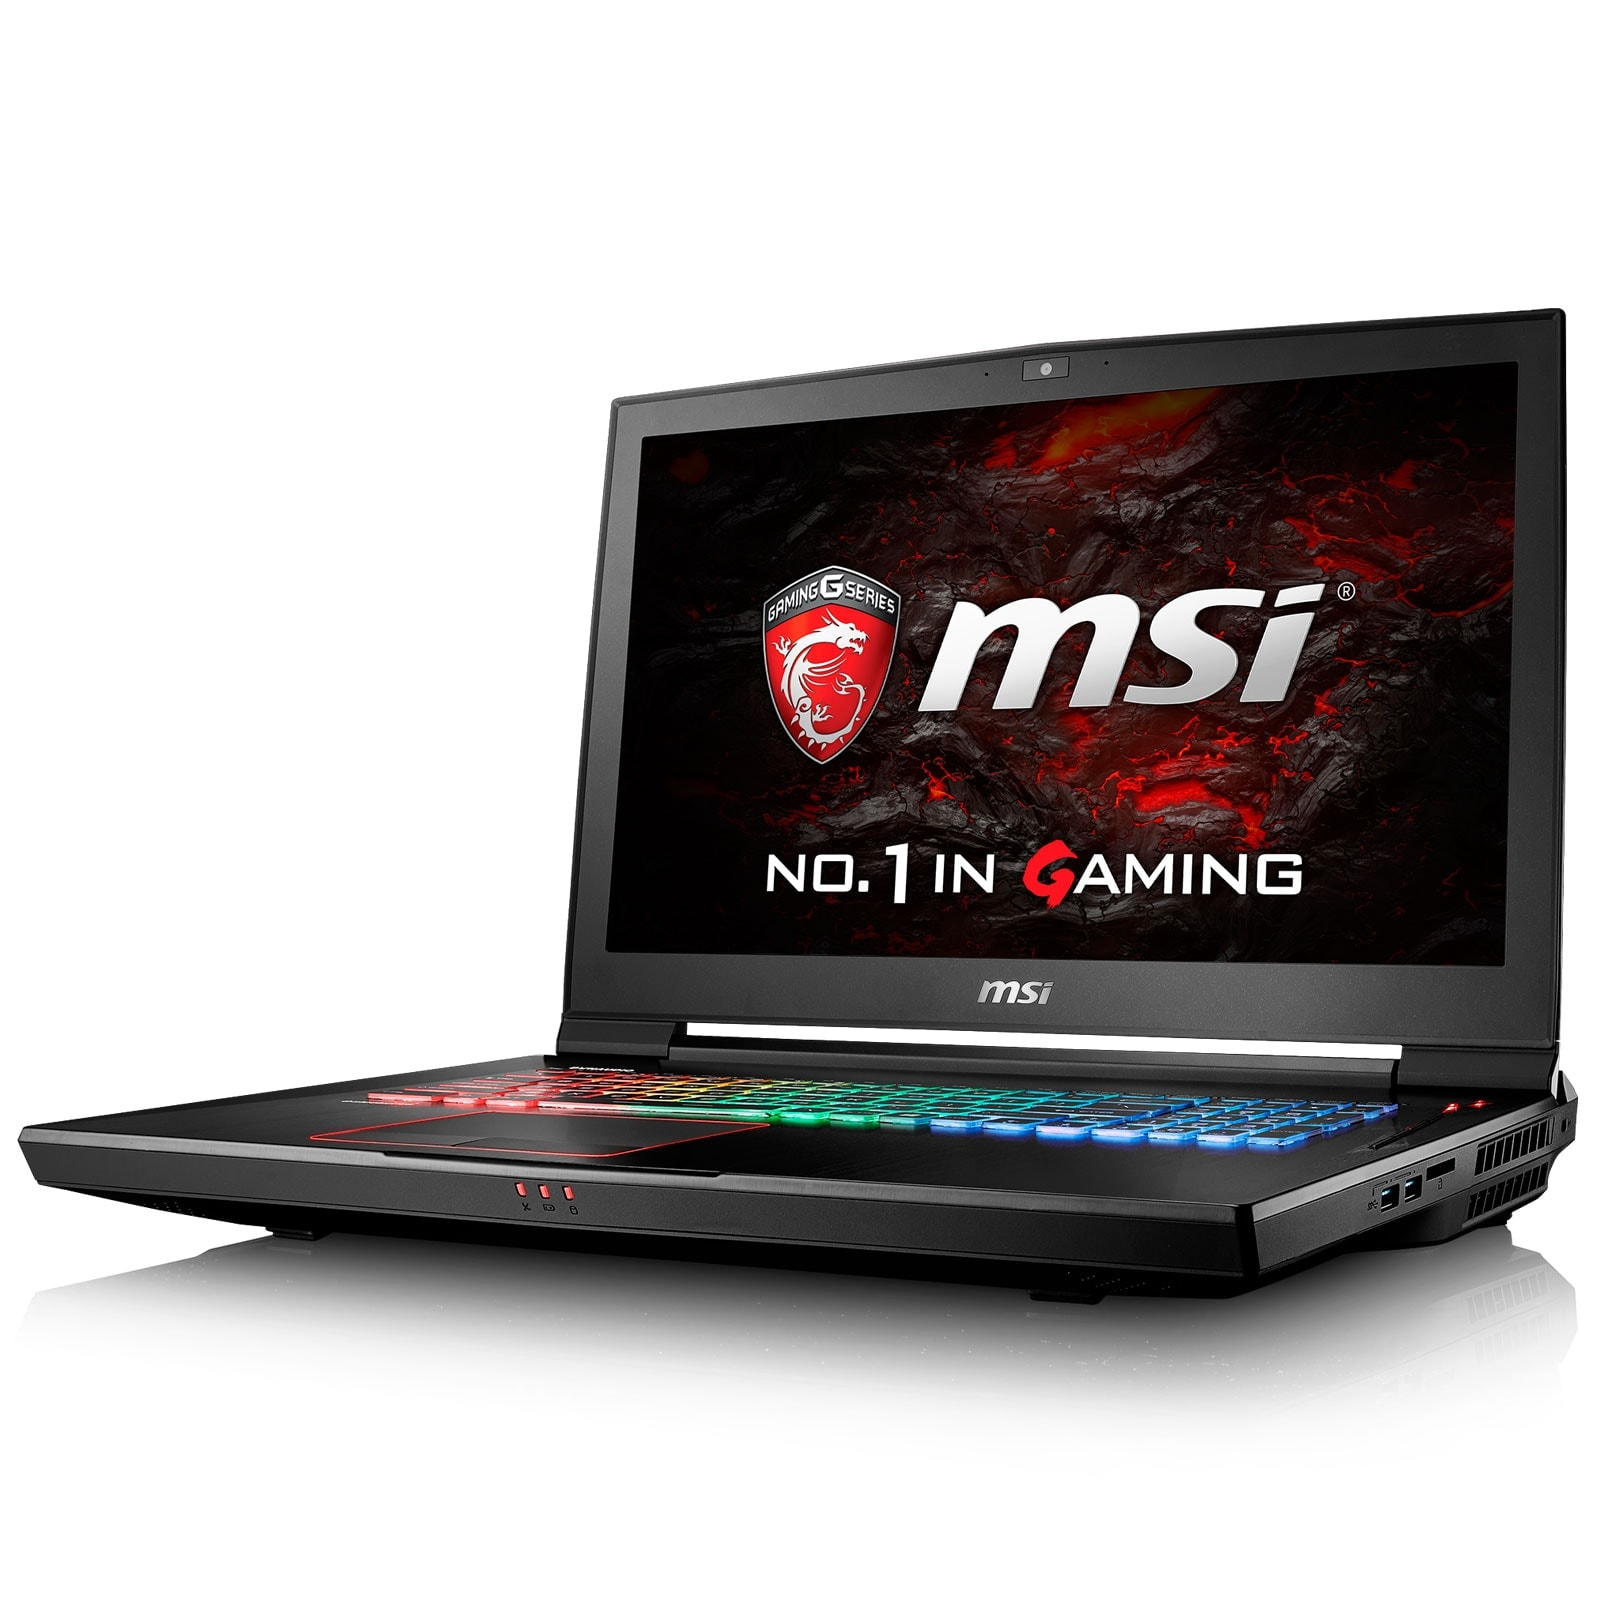 MSI 9S7-17A111-075 - PC portable MSI - Cybertek.fr - 1